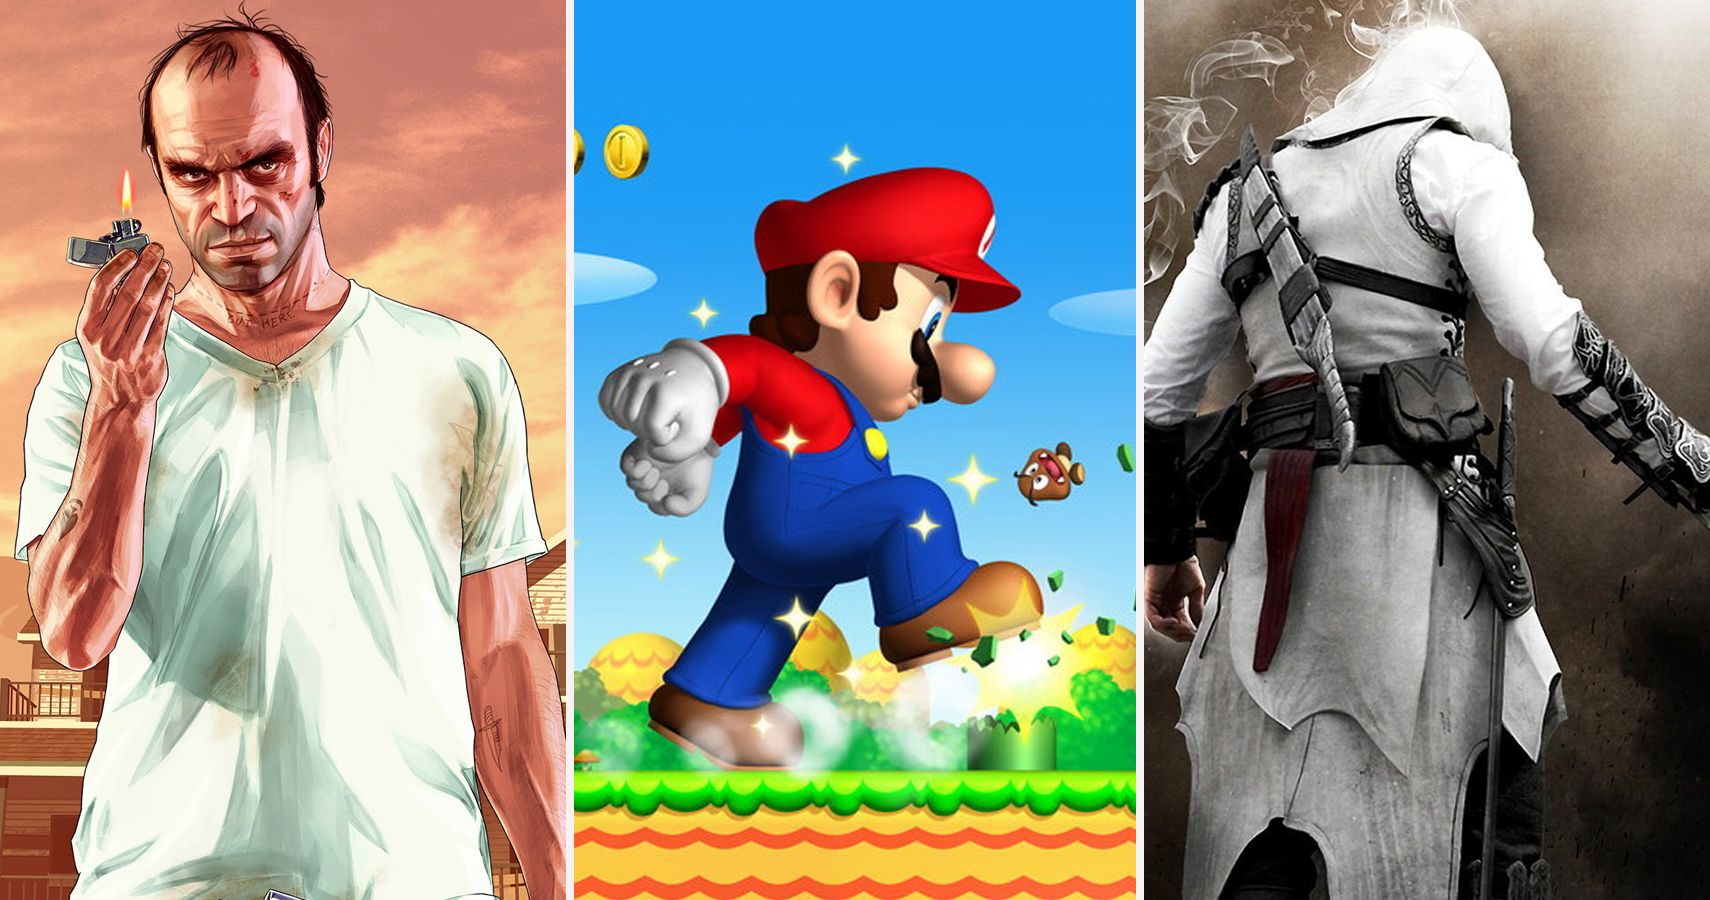 The Top 50 Highest-Grossing Video Game Franchises